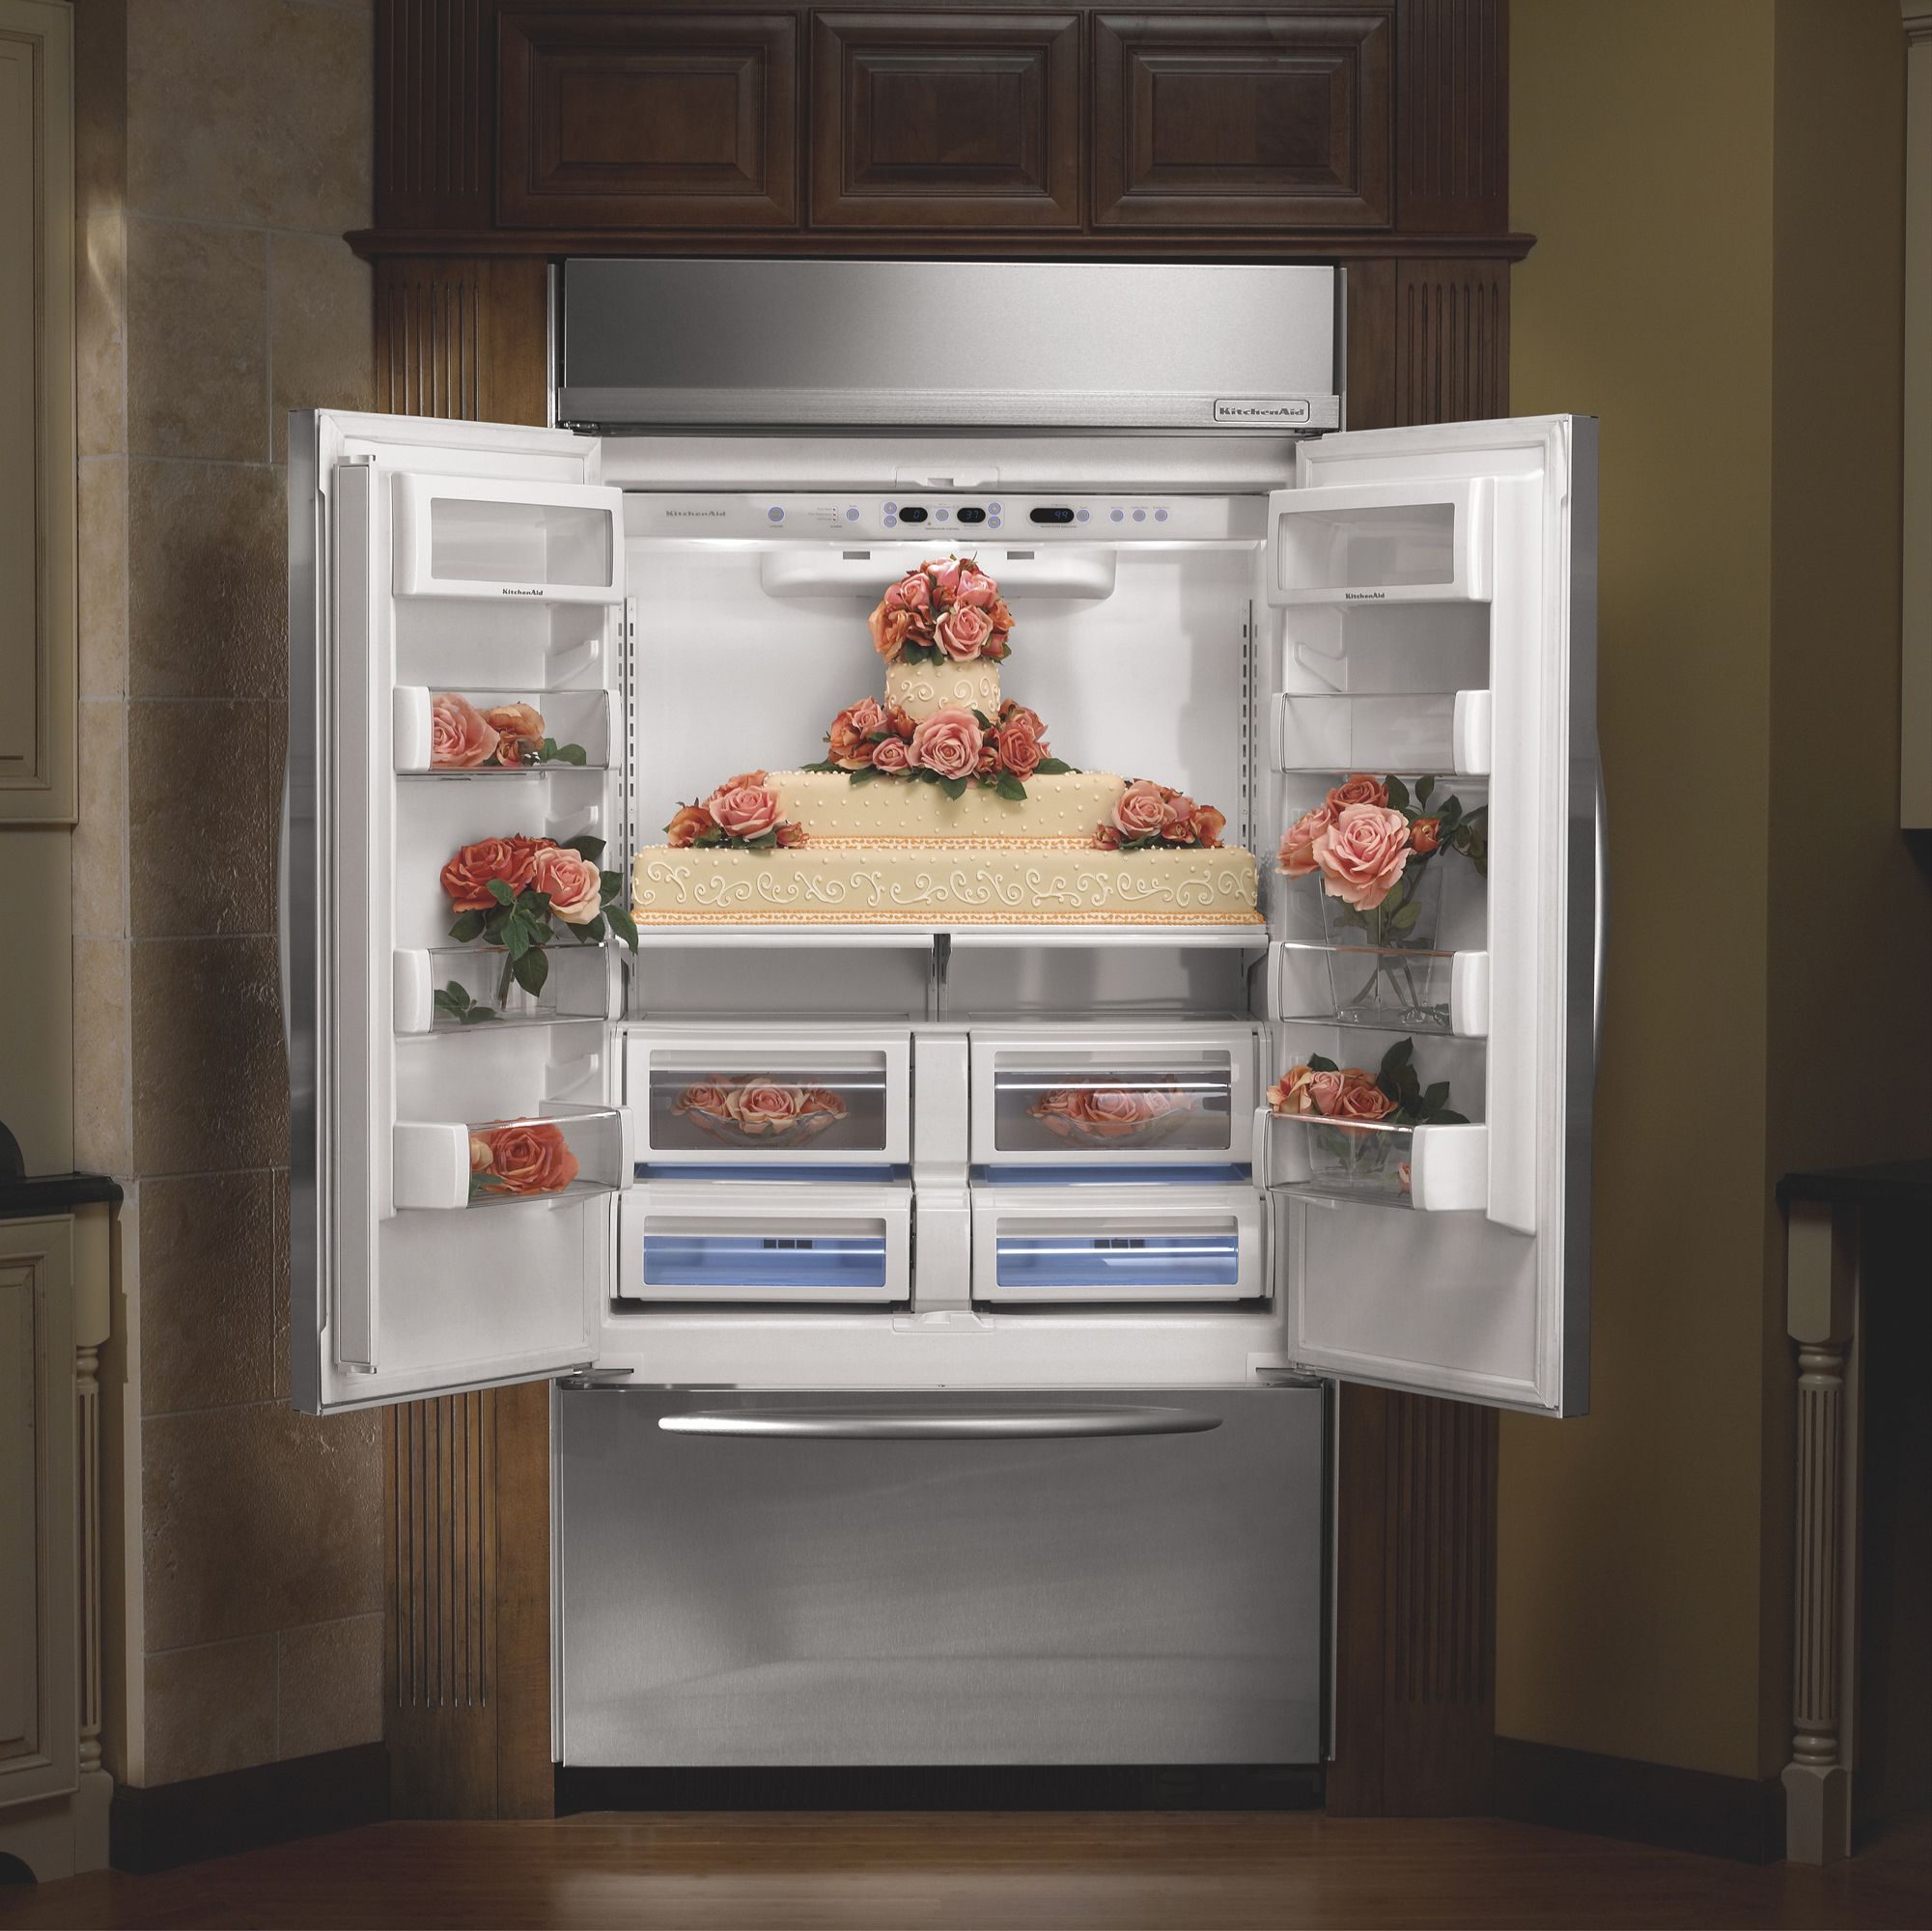 KitchenAid 22.6 cu. ft. Built-In French-Door Bottom Freezer Refrigerator